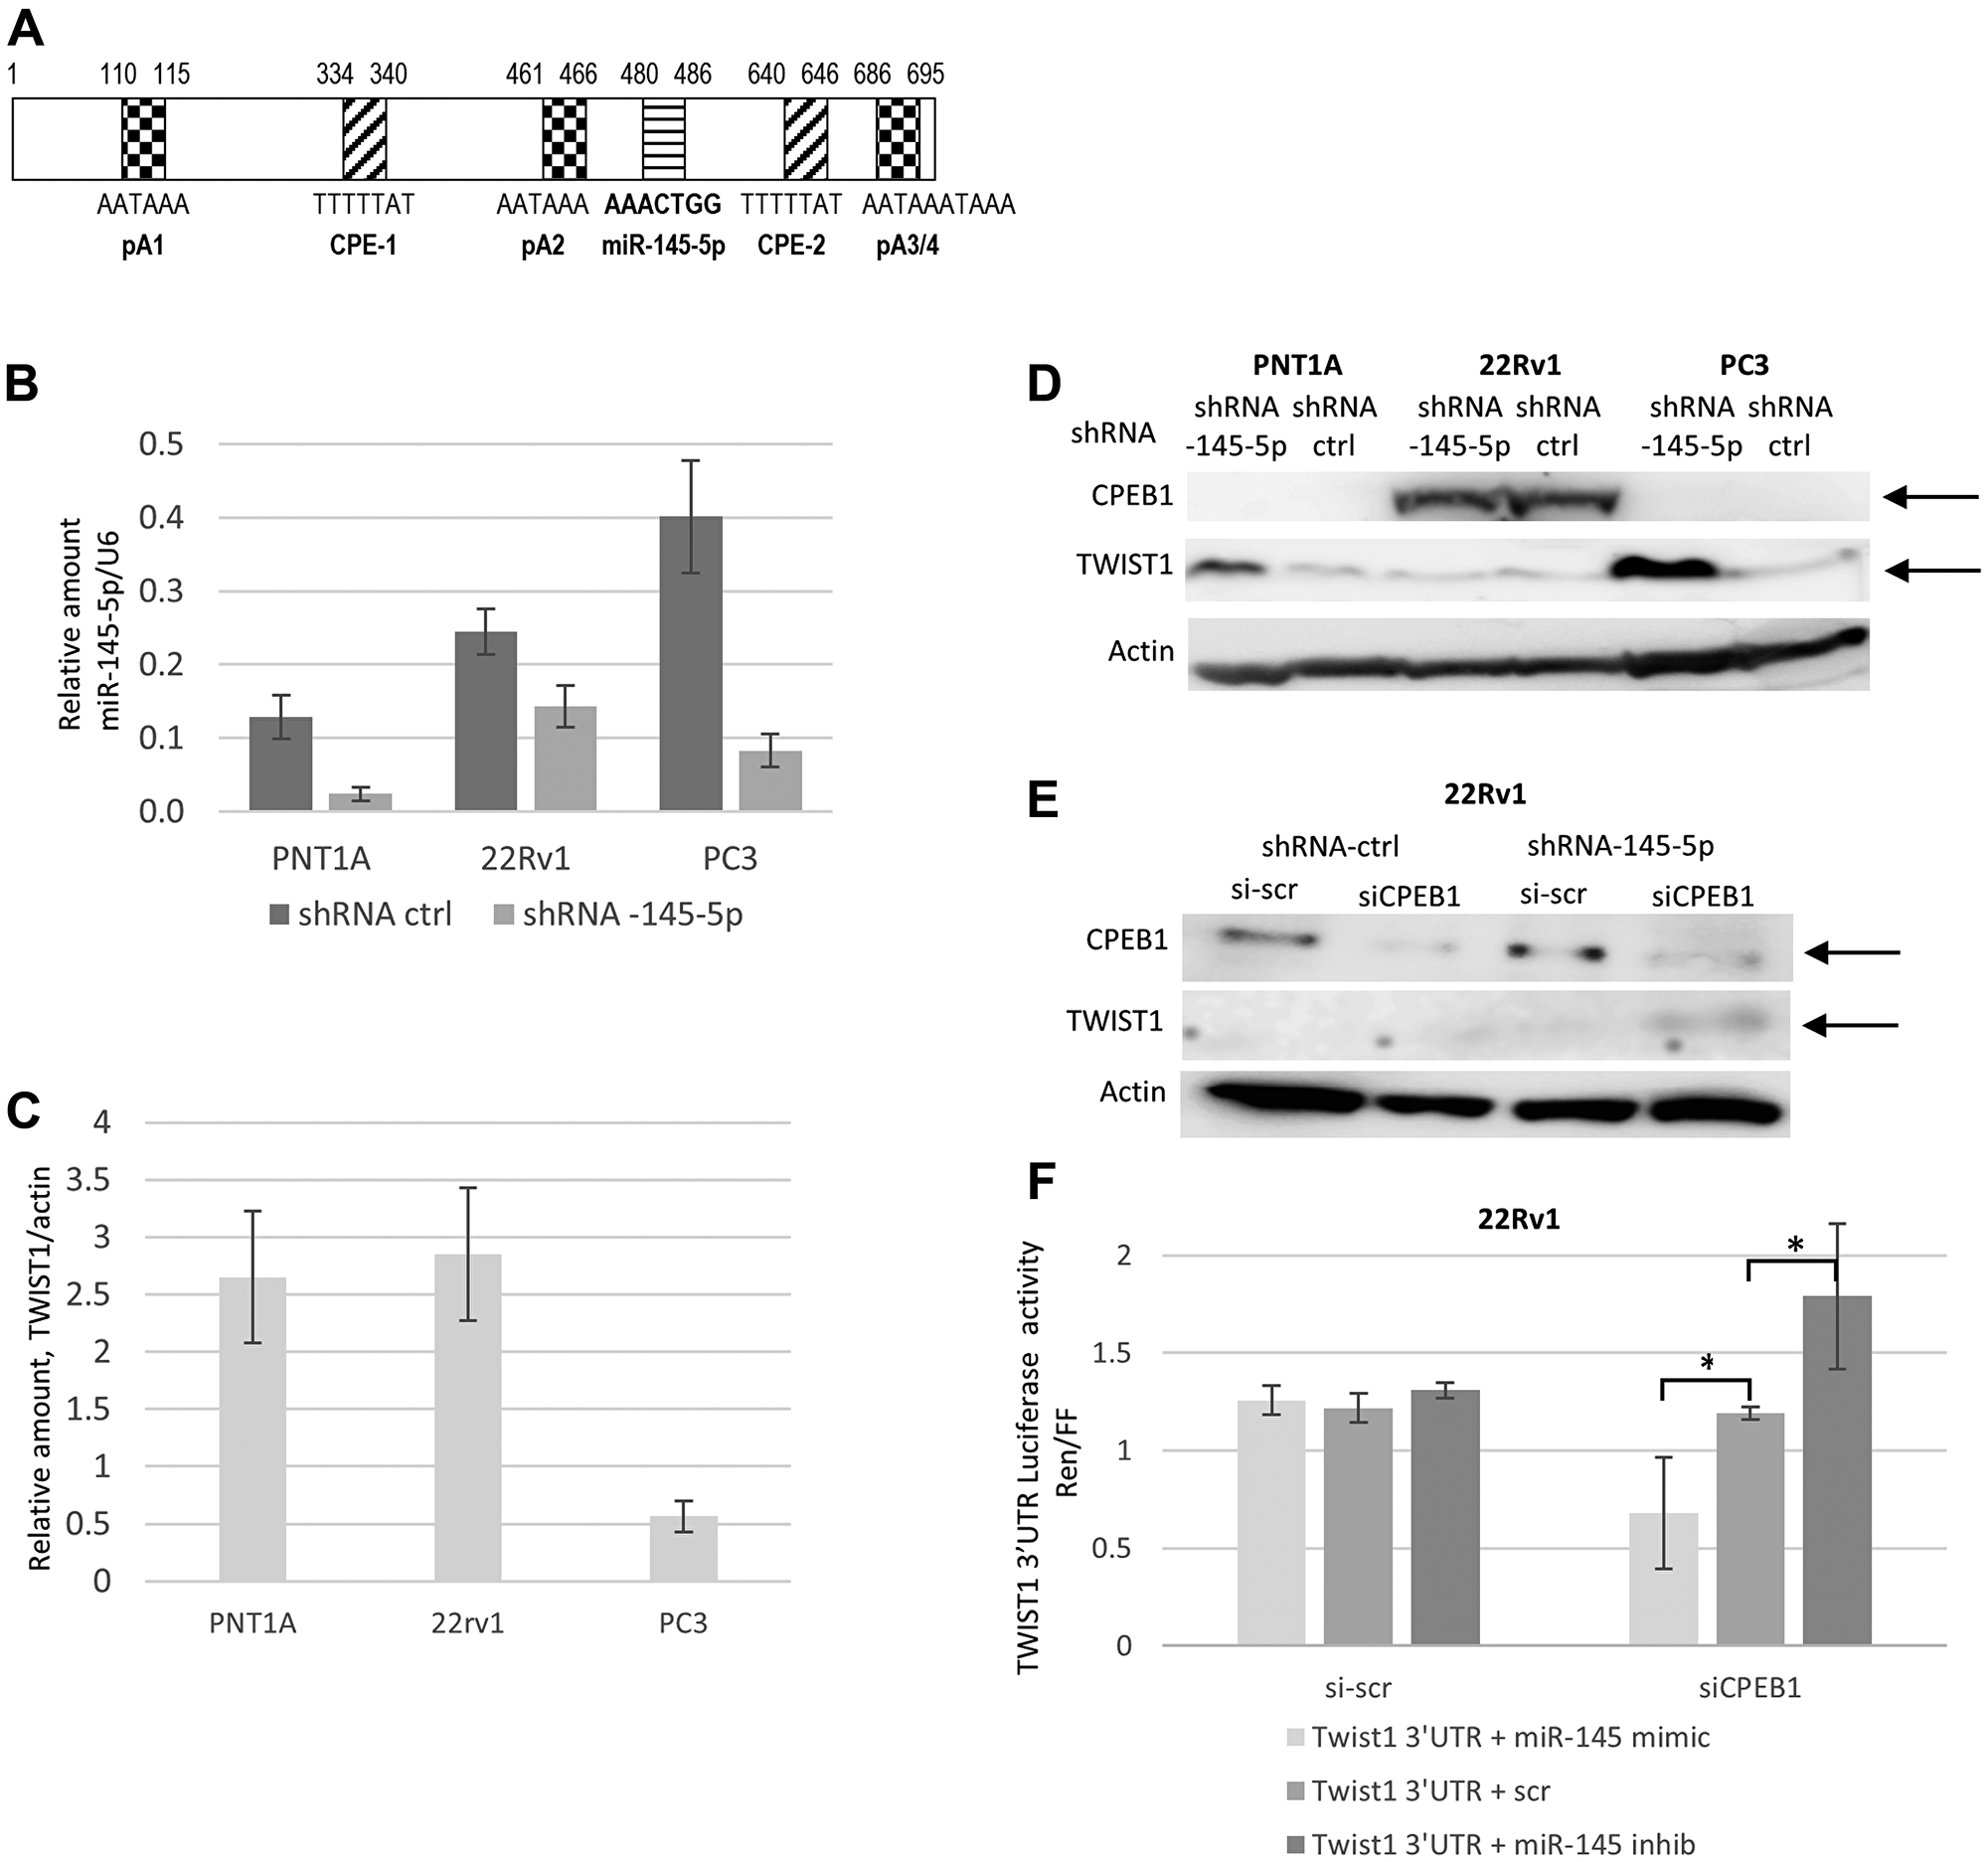 Interplay between miR-145-5p, CPEB1, and TWIST1 3′UTR regulation on TWIST1 expression in the PC3, 22Rv1 and PNT1A human prostate cell lines.